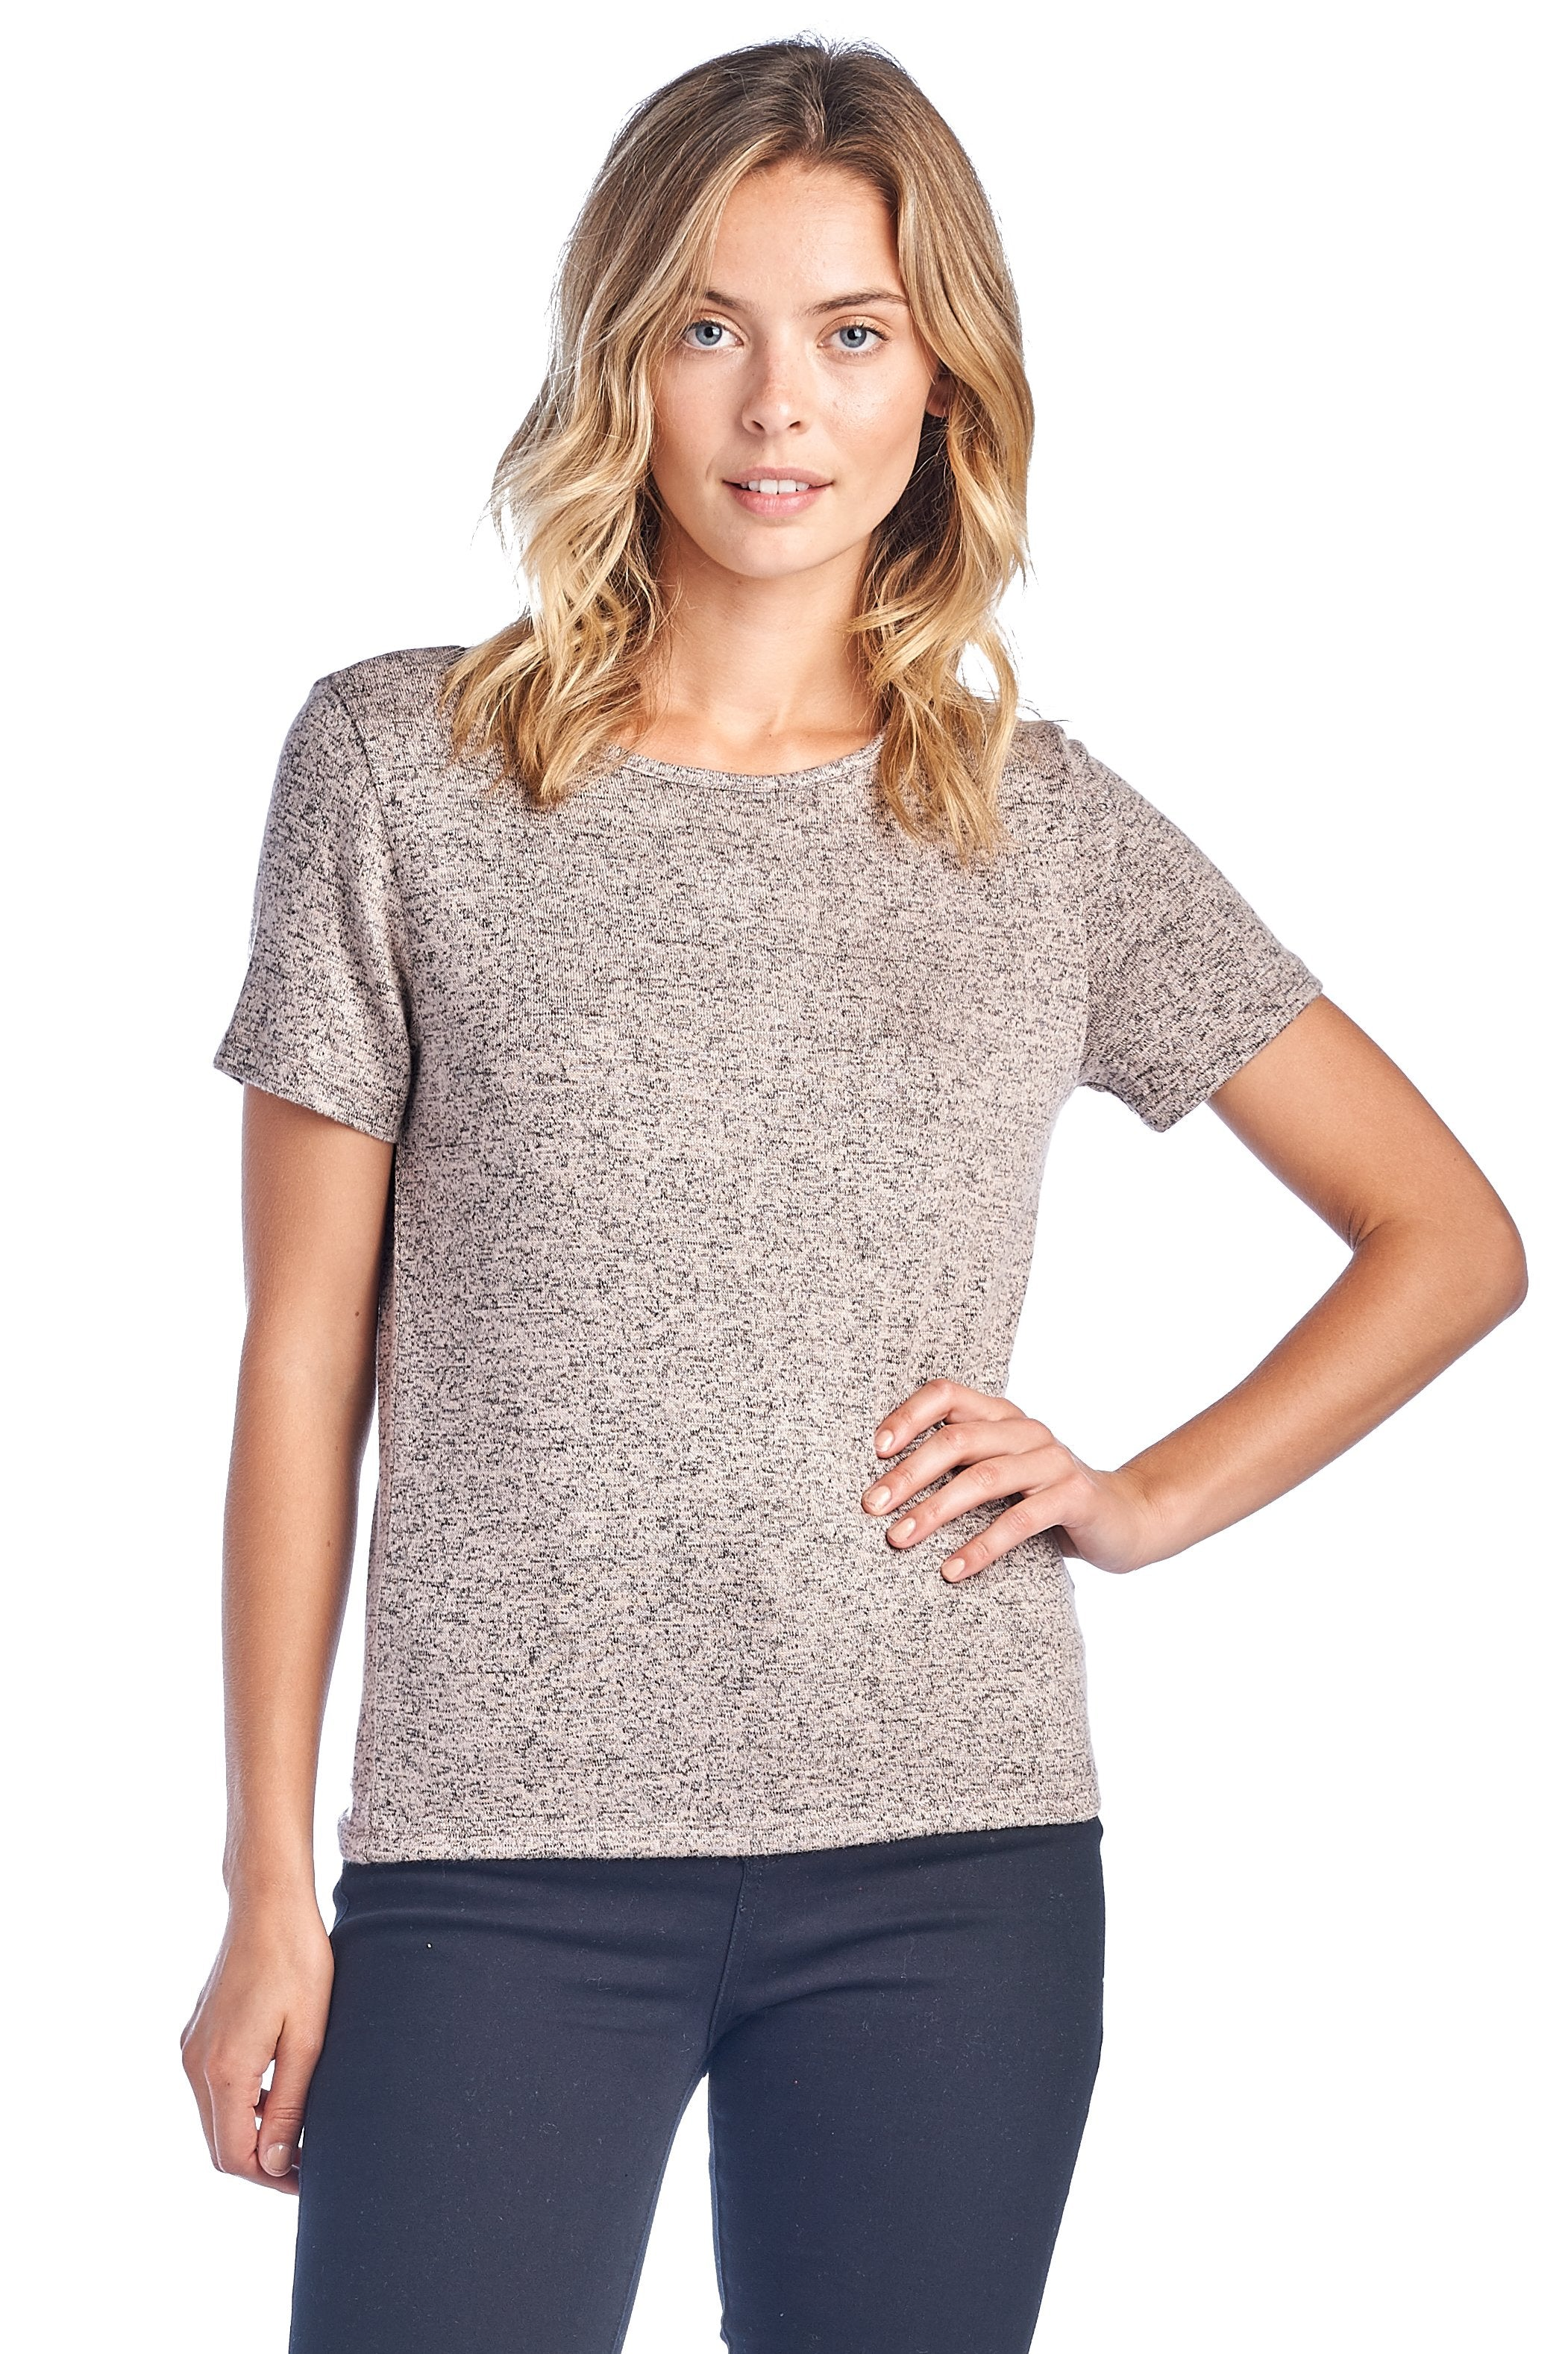 Women's Short Sleeve Crewneck Crisscross V Back Brushed Casual Fitted Top